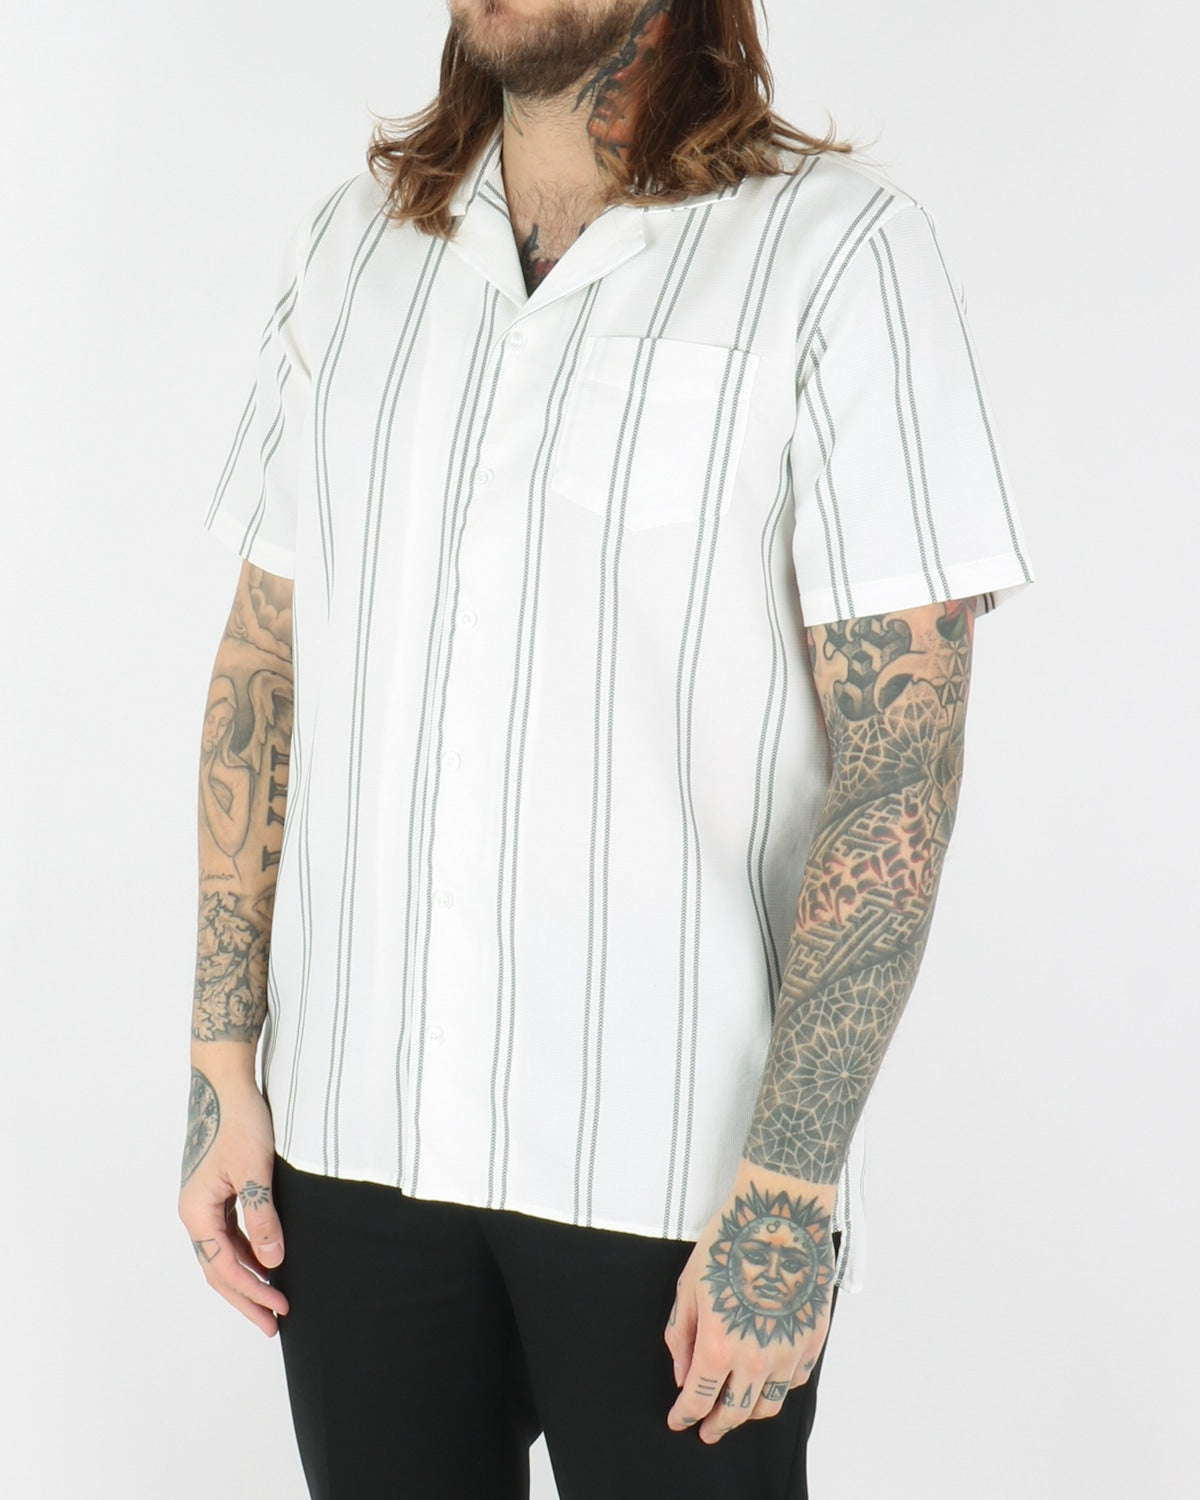 libertine libertine_cave shirt_white_view_2_3